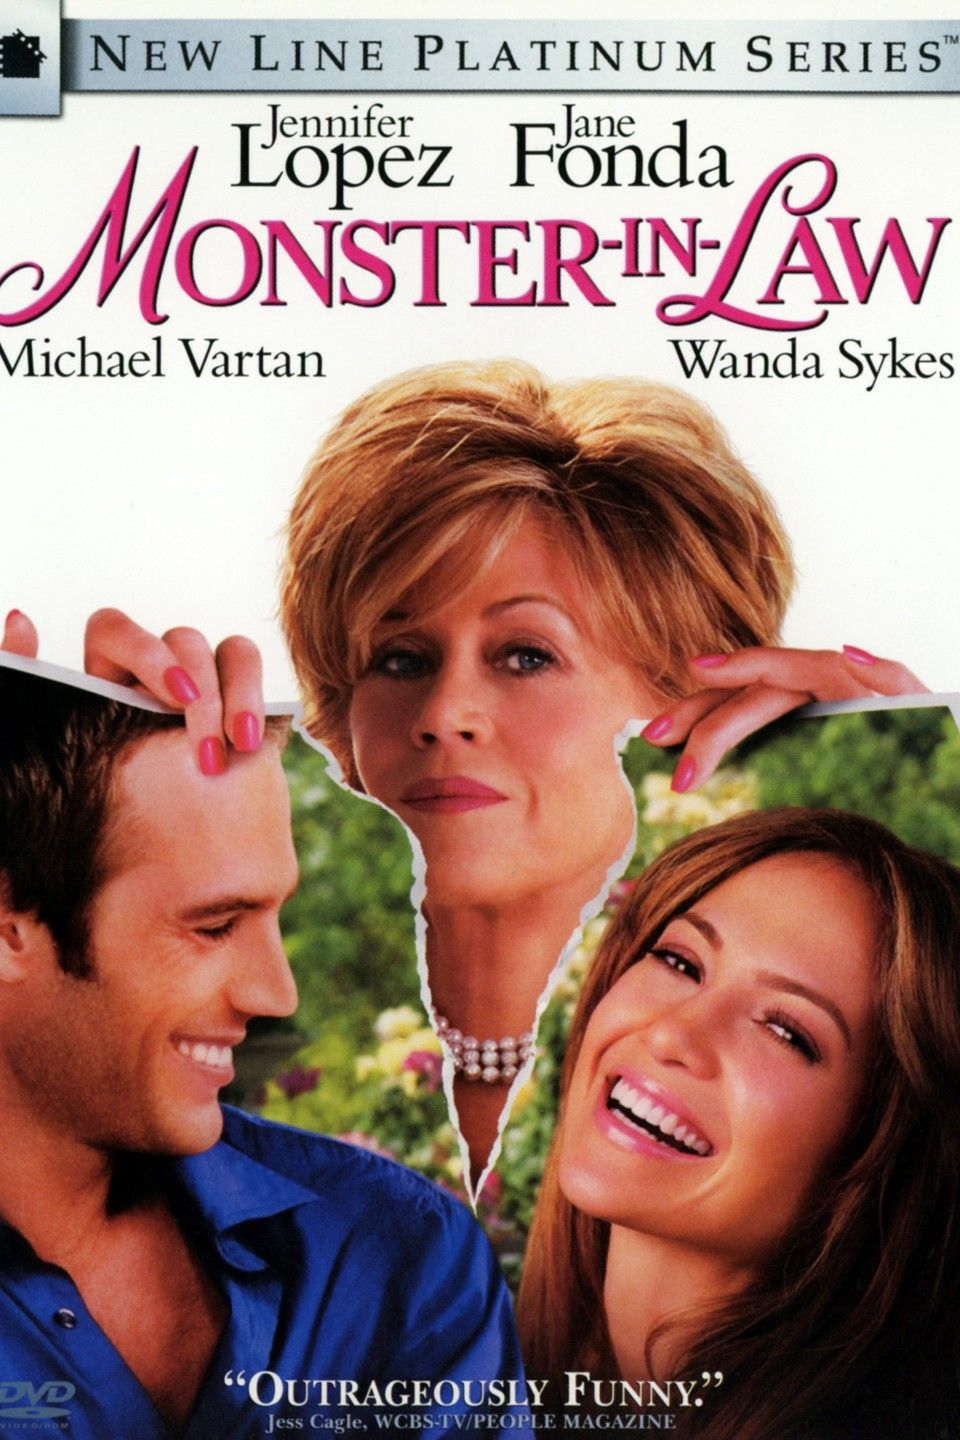 Pin by william draube on wanda skyes monster in law